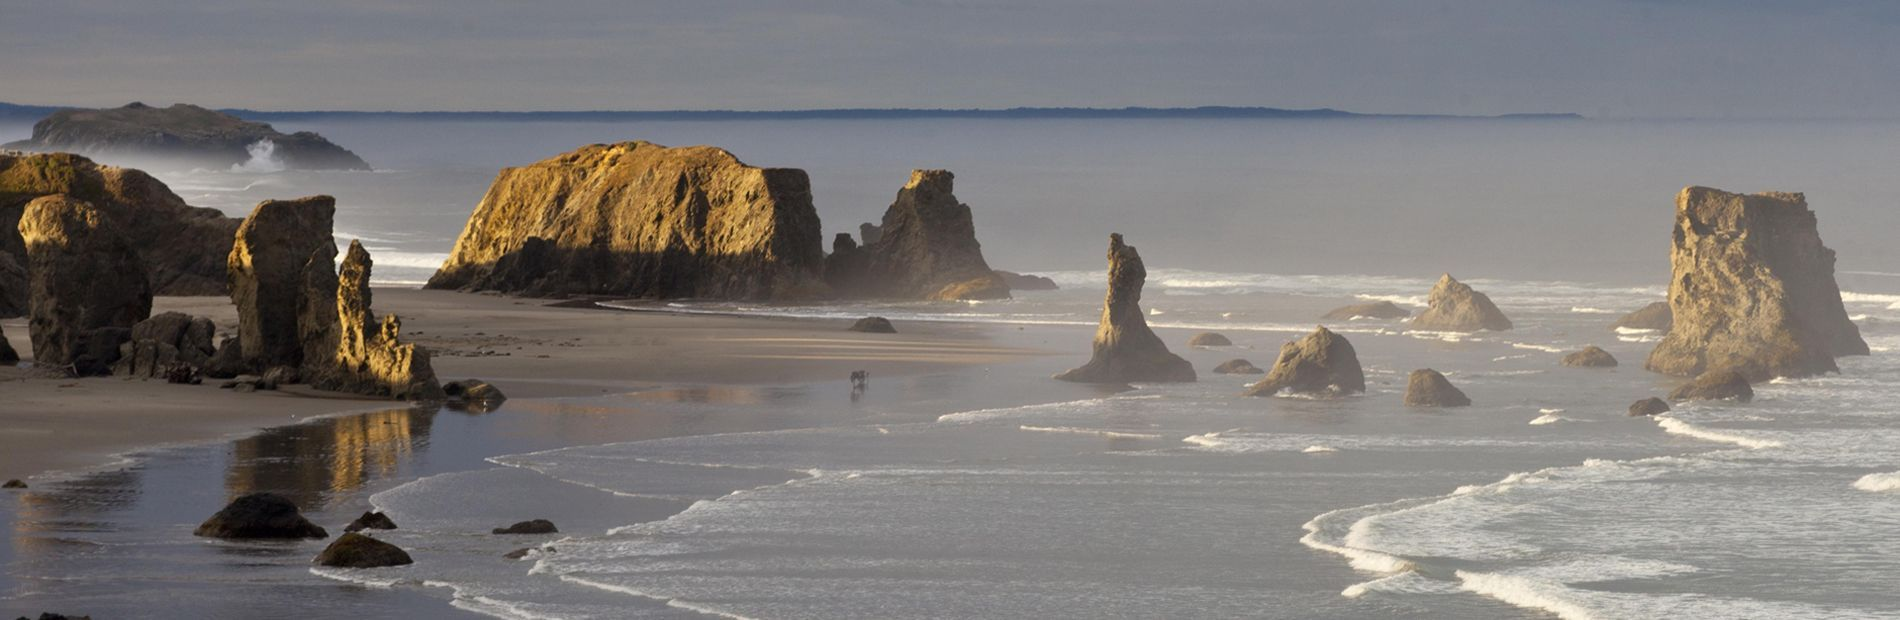 Five Great Viewpoints on the Southern Oregon Coast